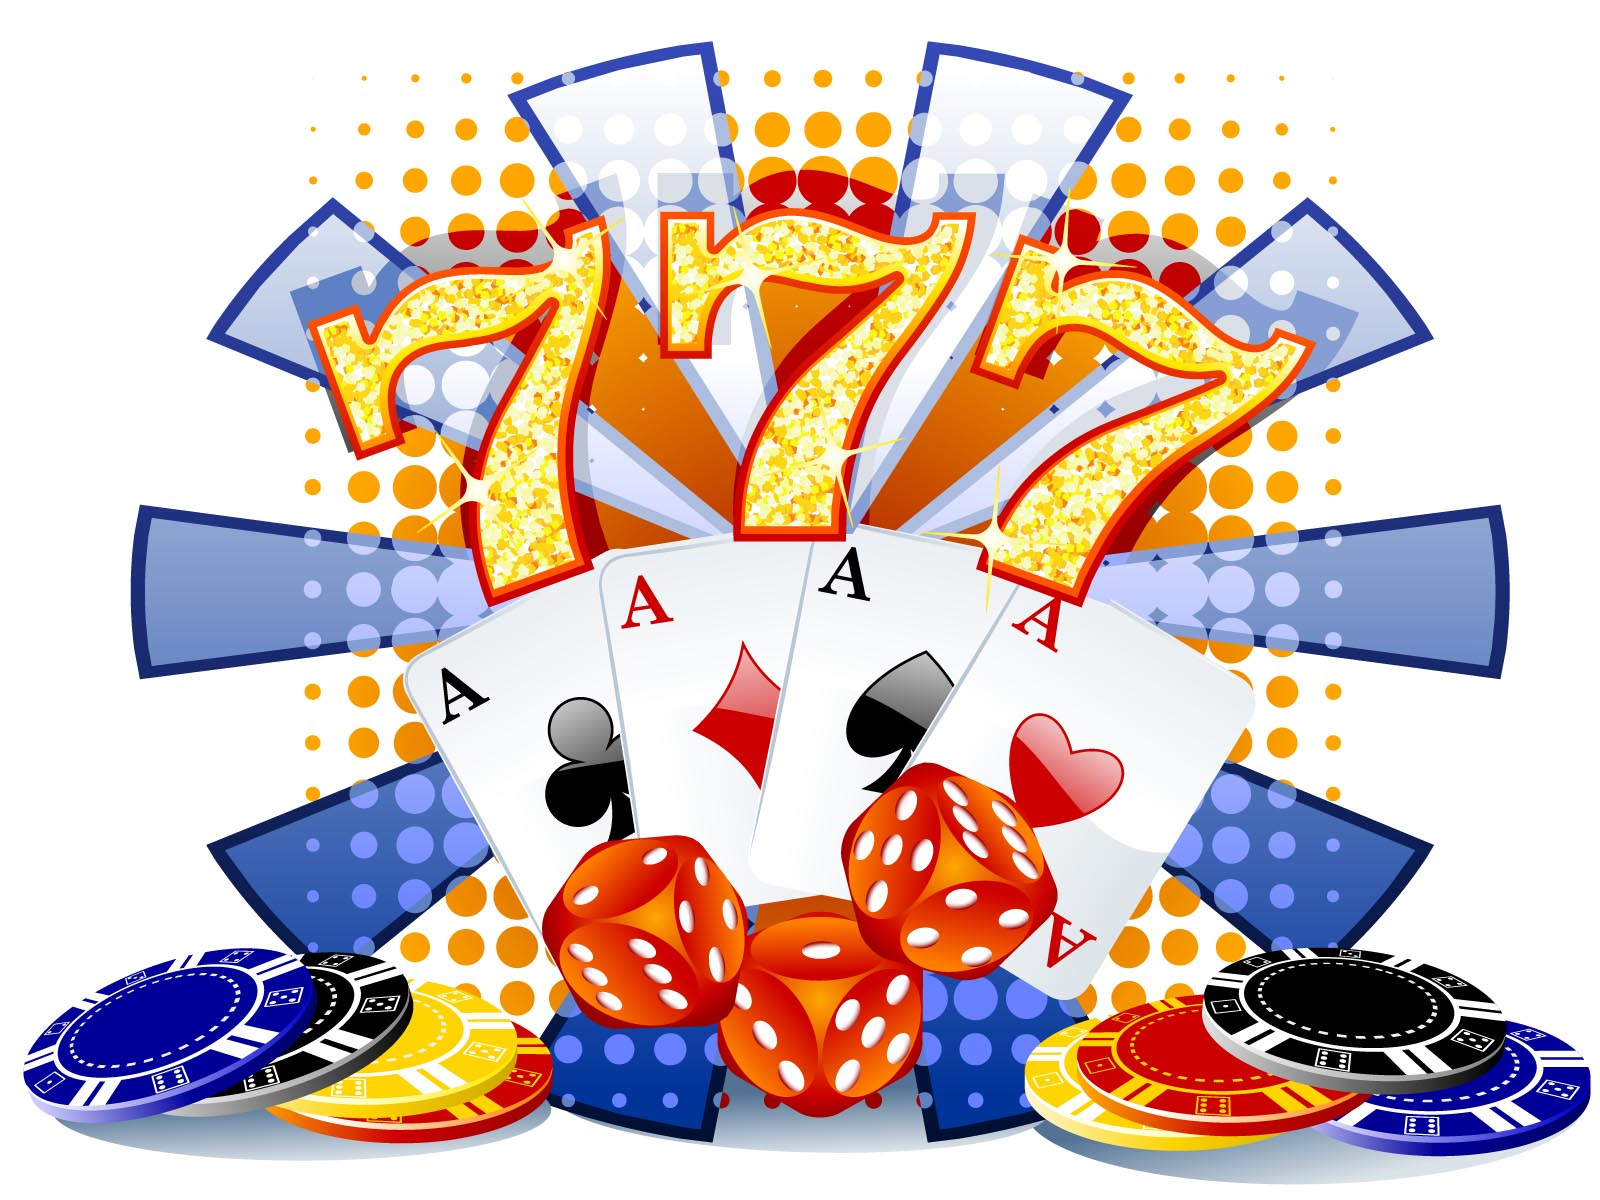 Gambling illustration with Casino Elements Backgrounds